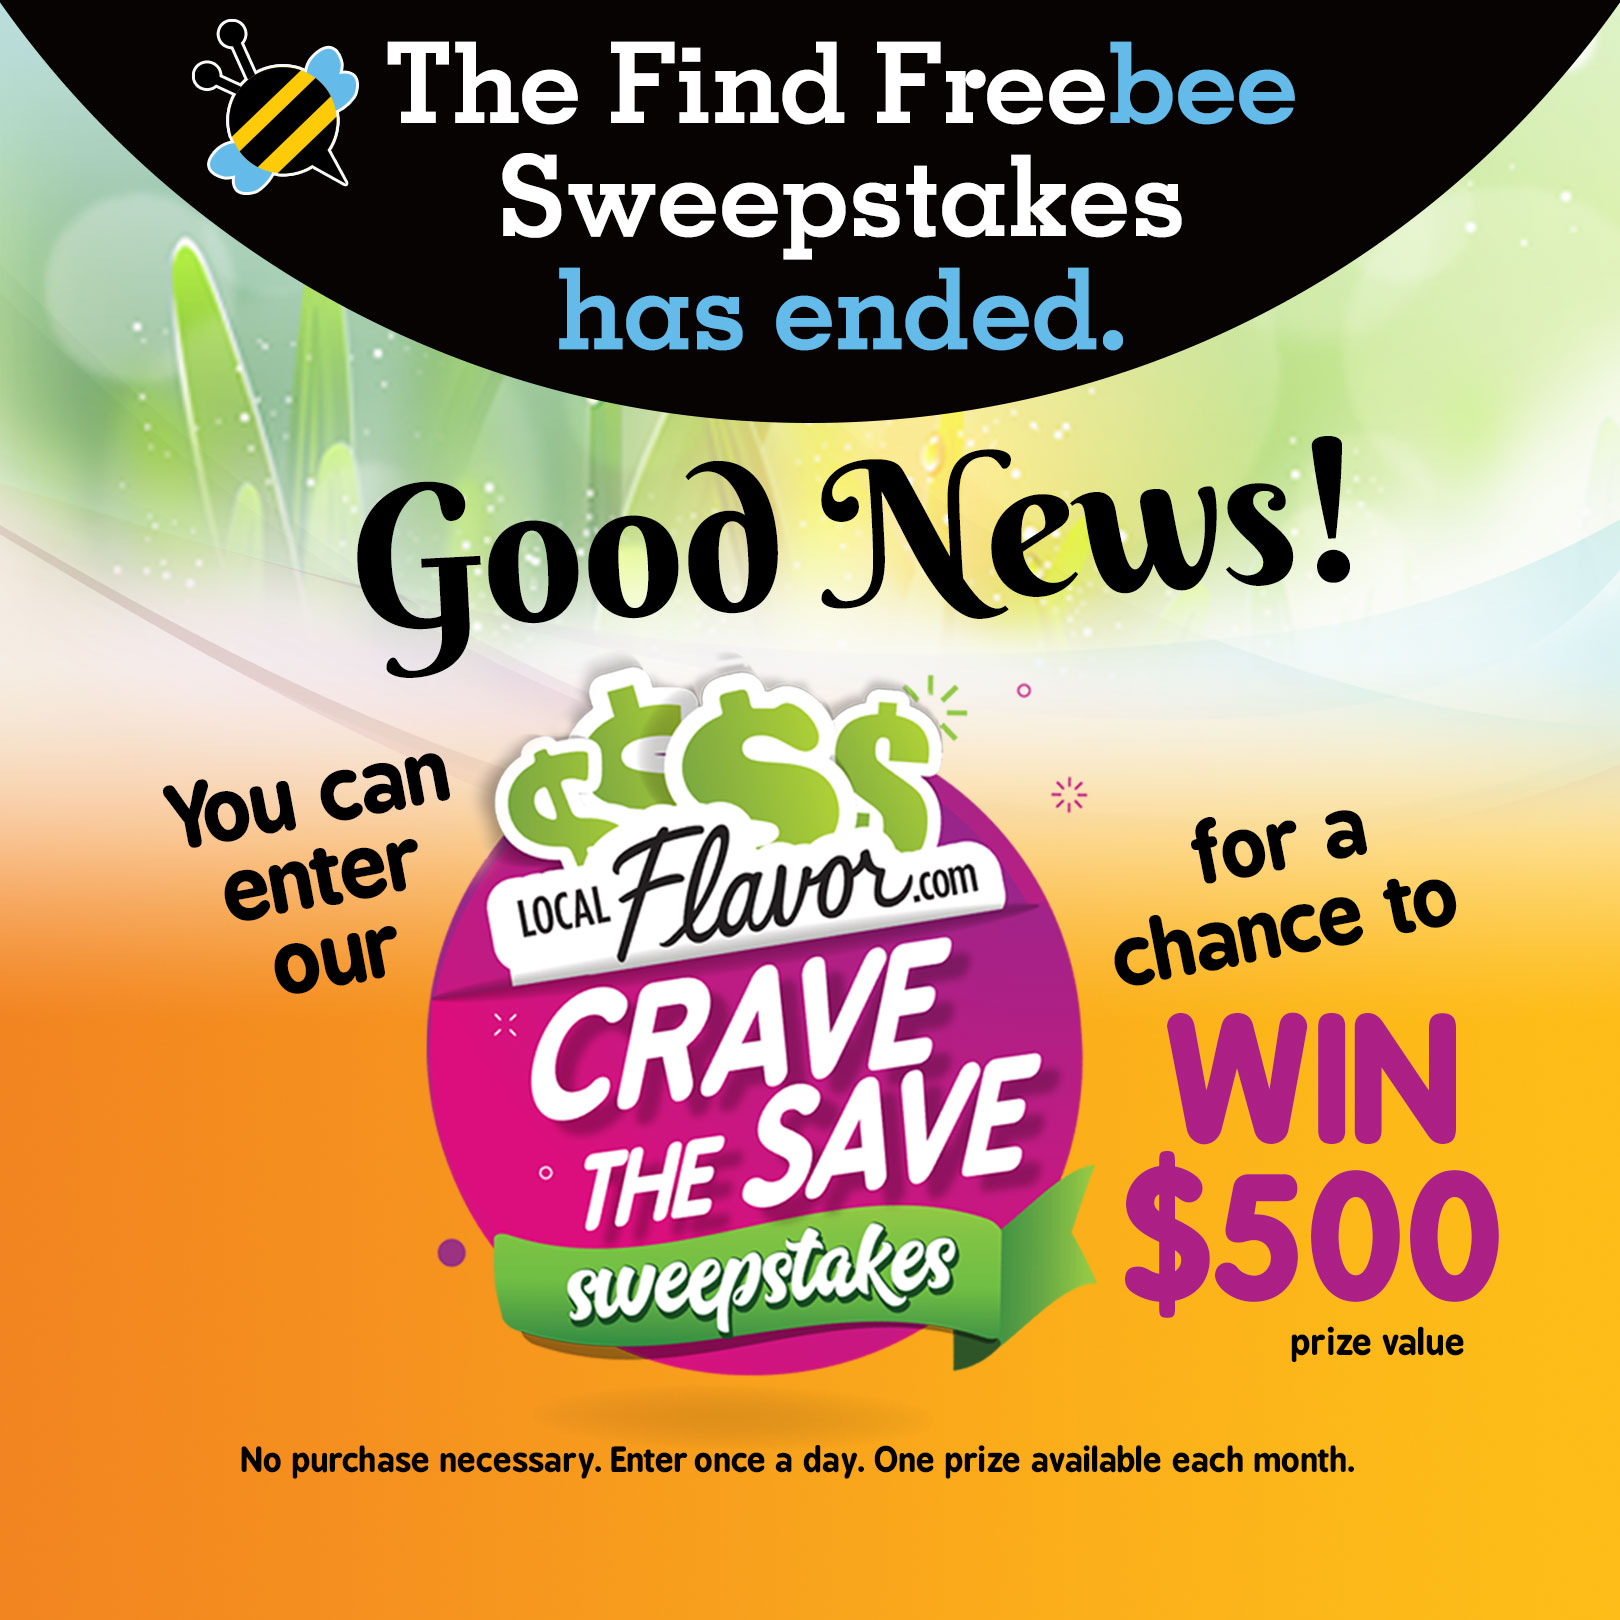 The Find Freebee Sweepstakes has ended. Good News! You can enter our LocalFlavor.com Crave the Save Sweepstakes for a chance to win $500 (prize value). No purchase necessary. Enter once a day. One prize available each month.